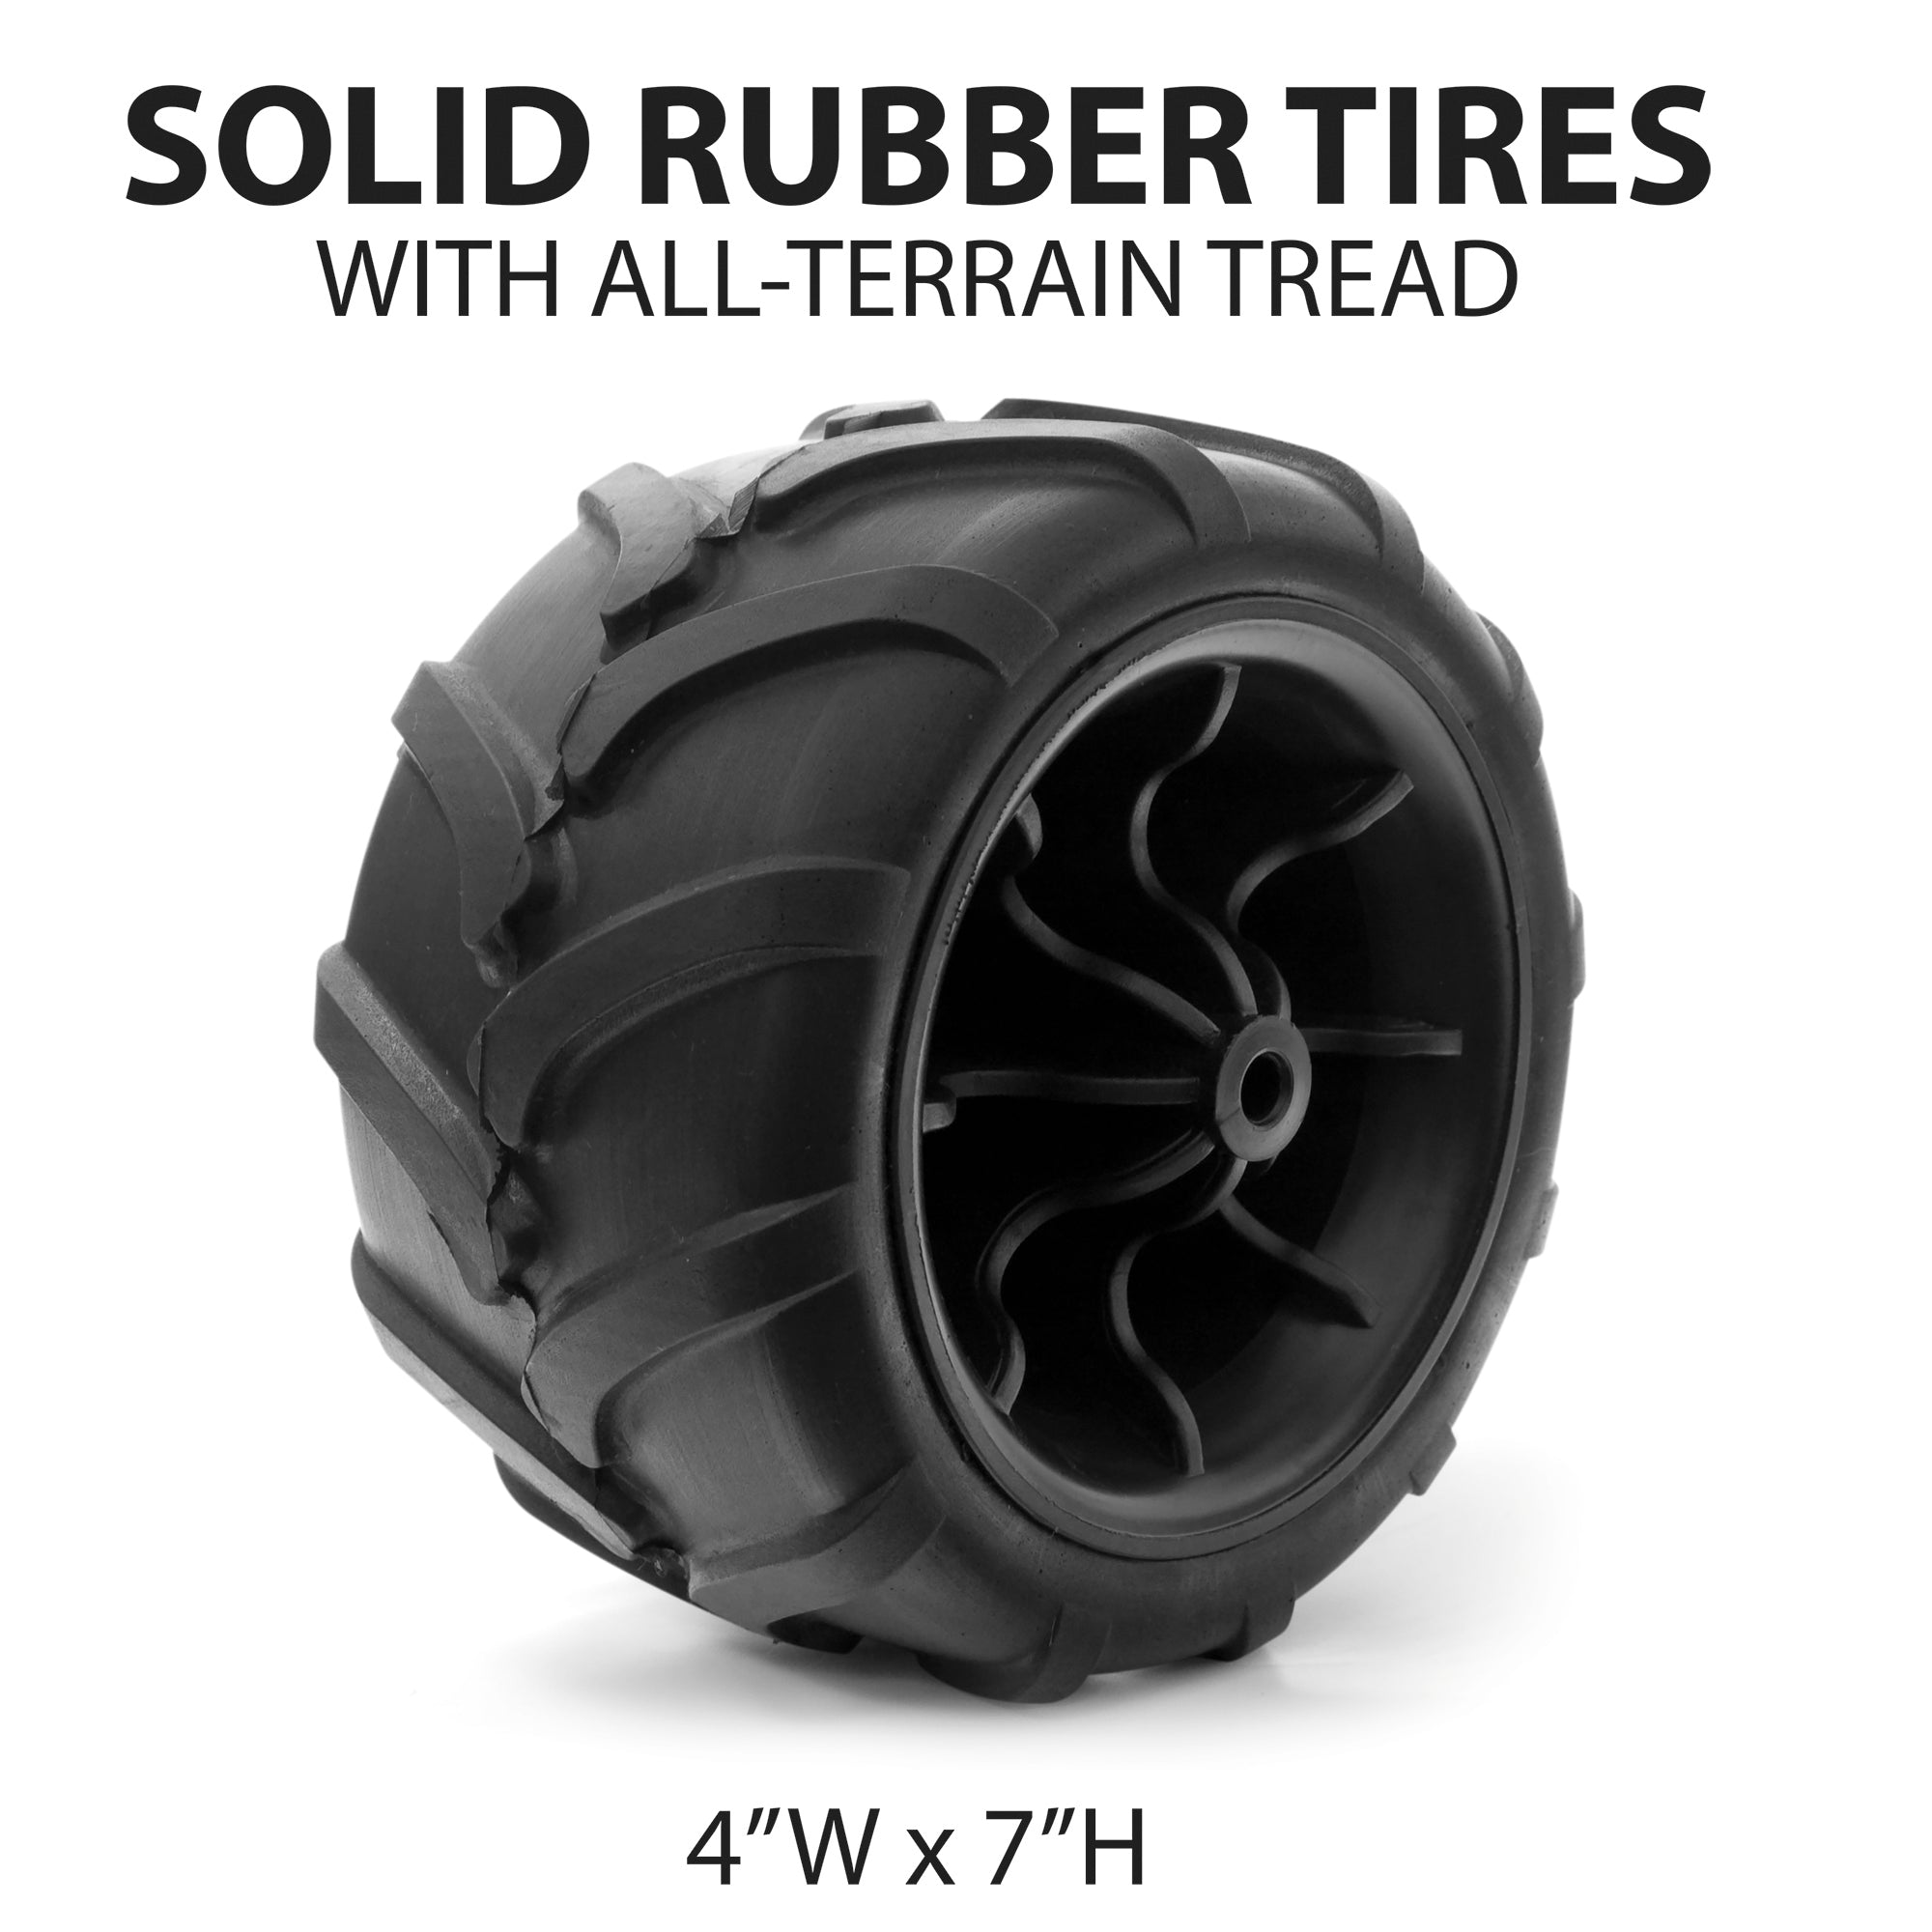 All-Terrain Folding Wagon Wheel Dimensions